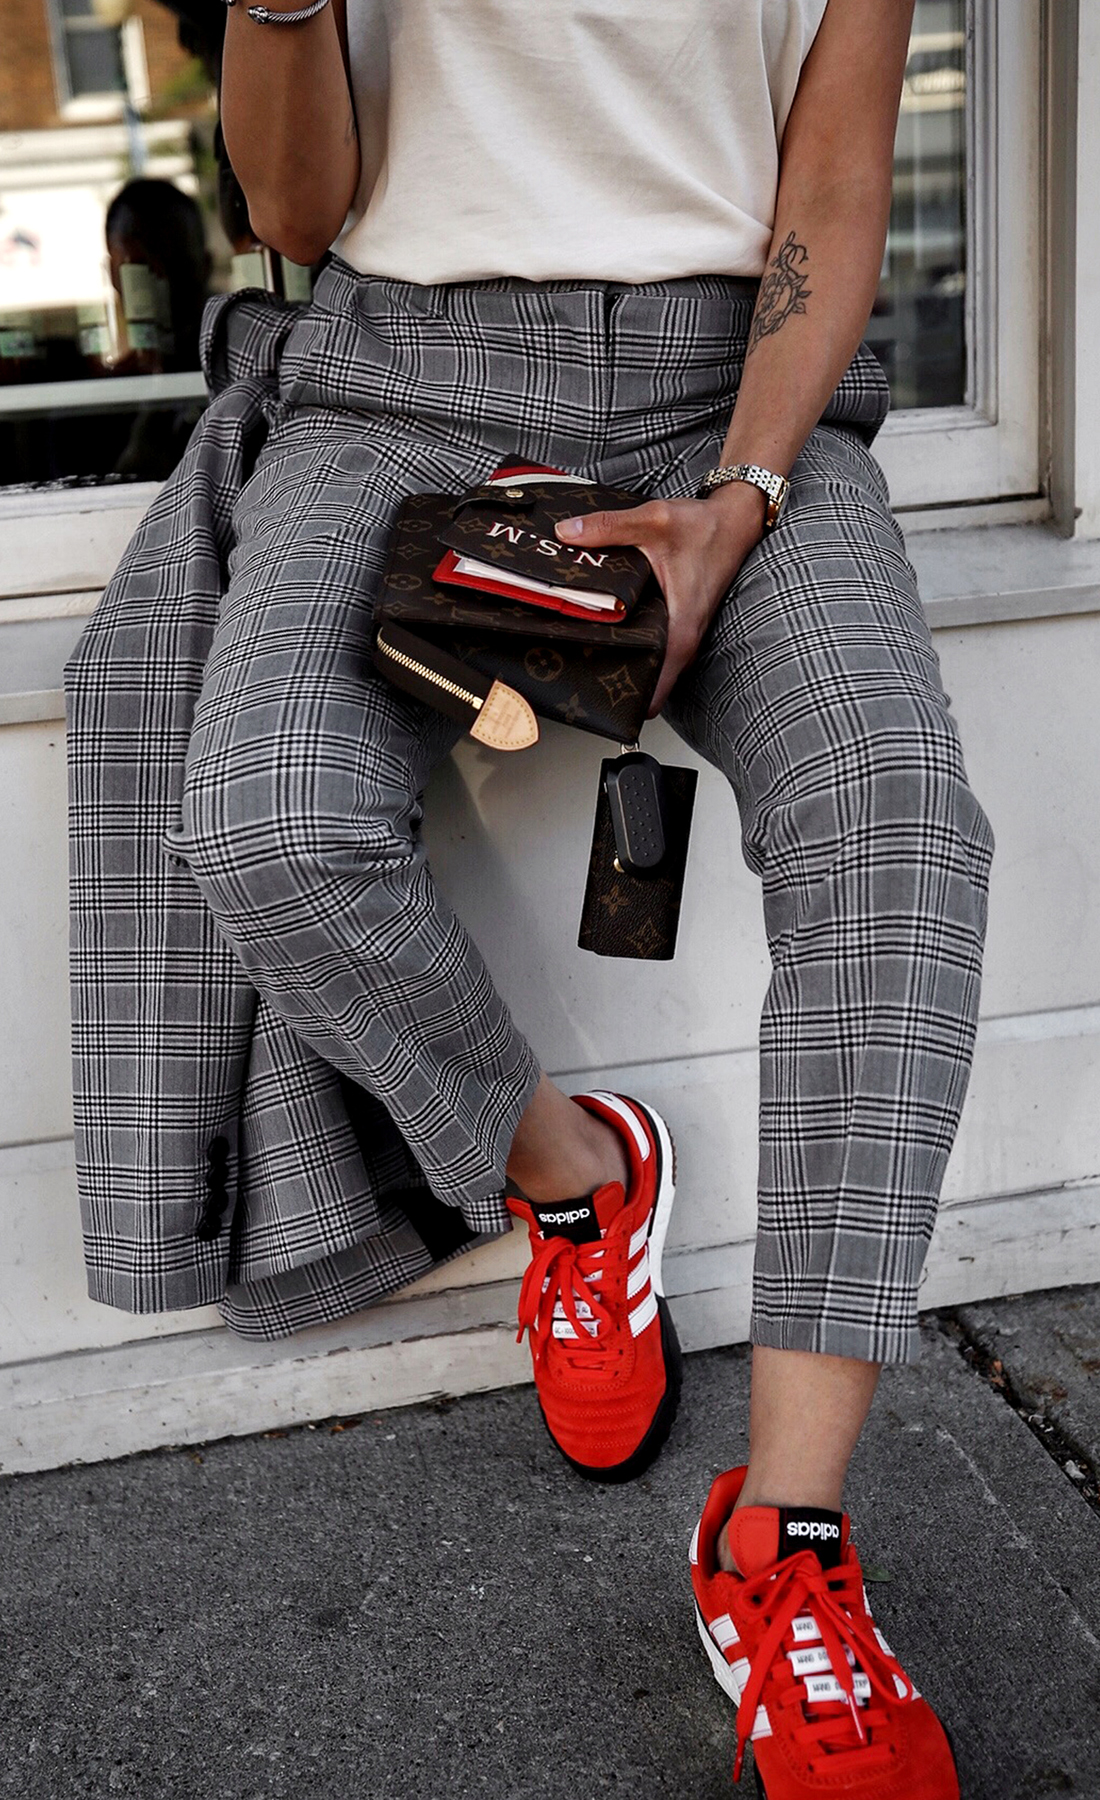 fw18 street style plaid suit women - menswear inspired - nordstrom - alexander wang Orange red AW BBall Soccer Sneakers, louis vuitton small agenda 1.JPG